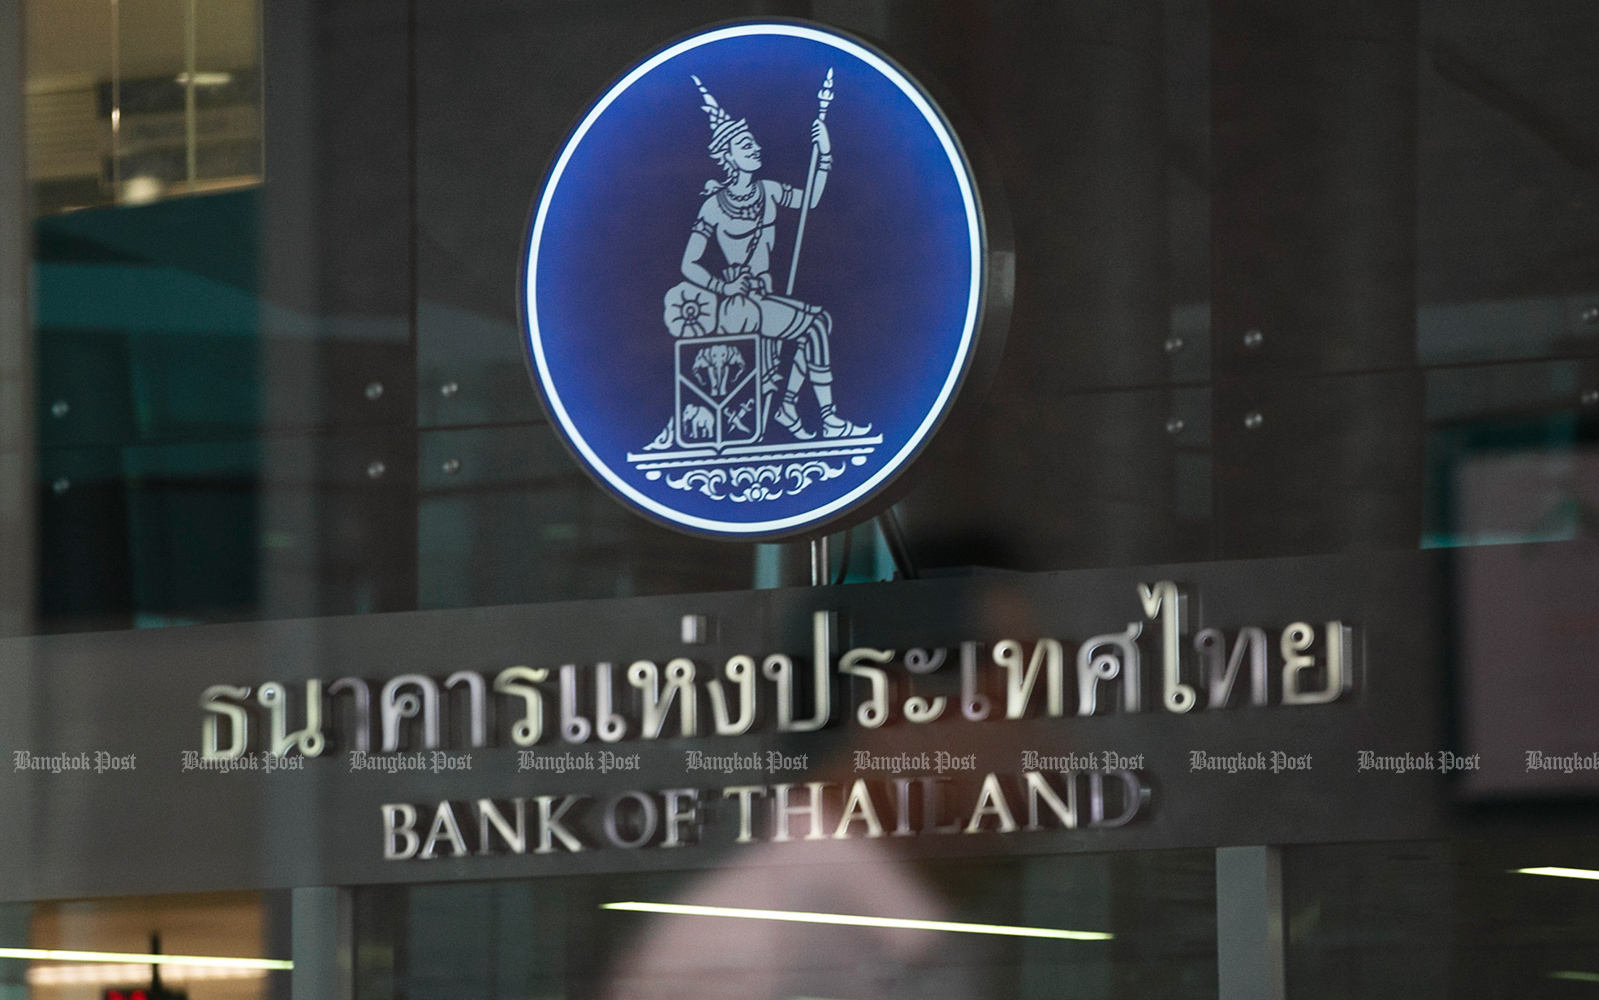 Bond market has stabilised more over the past month, according to the Bank of Thailand.